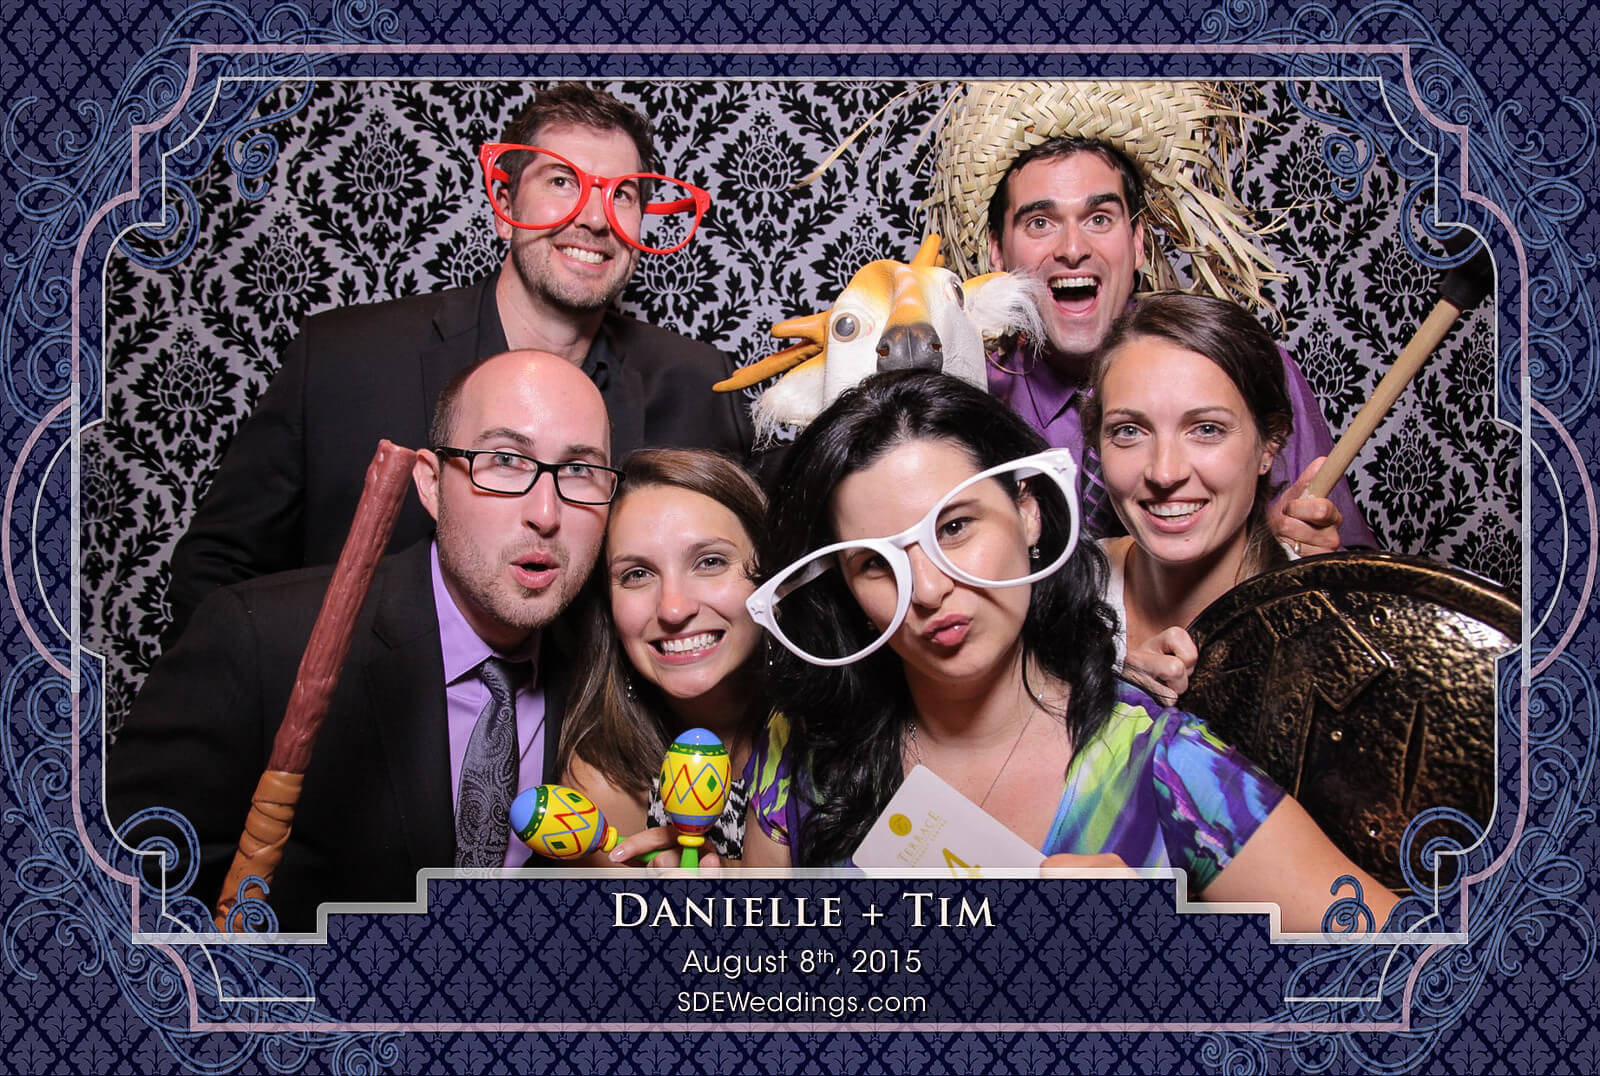 Toronto Old Mill Inn Wedding Photo Booth Rental 5